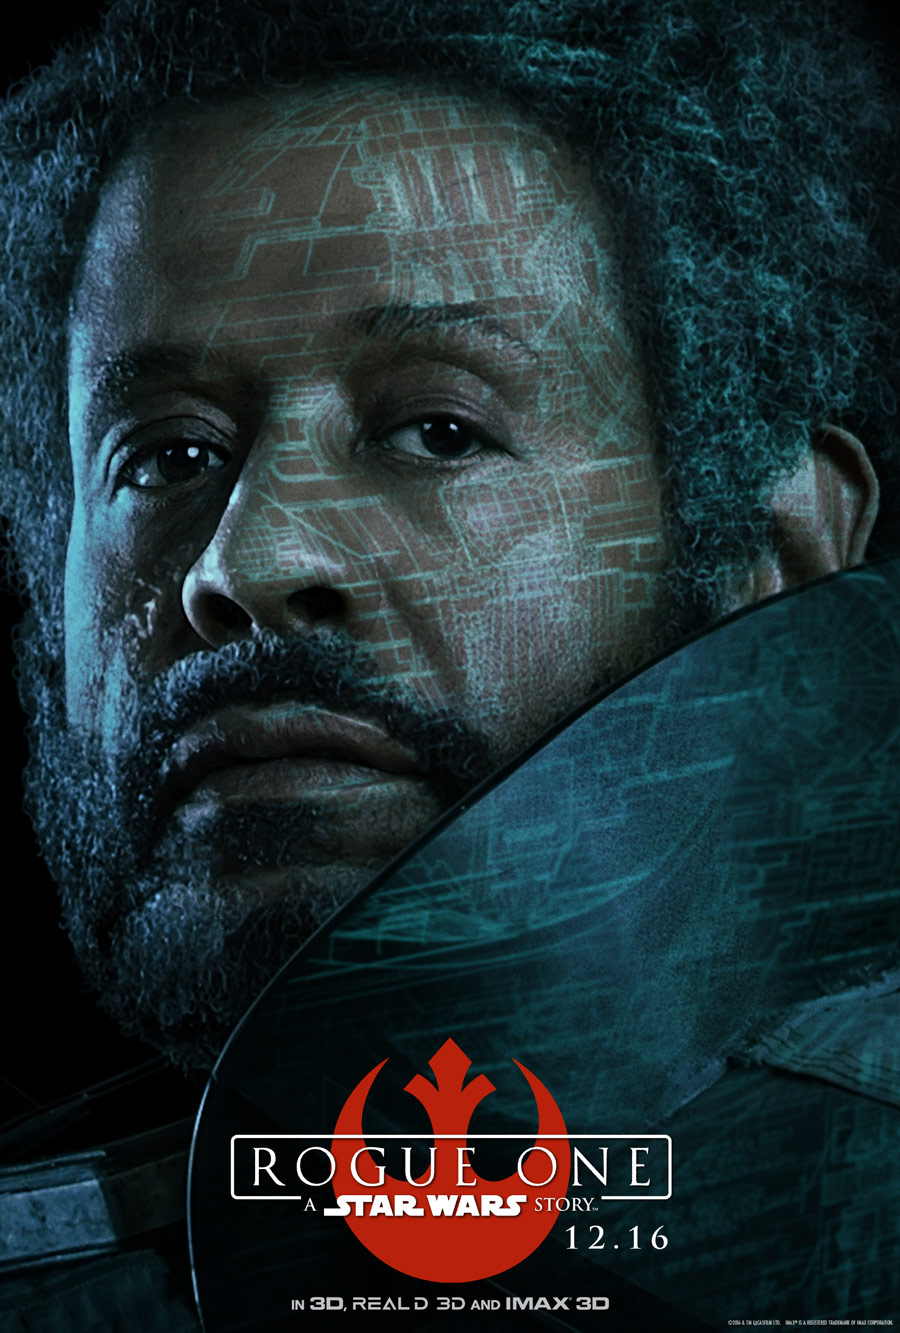 Rogue One Character Posters